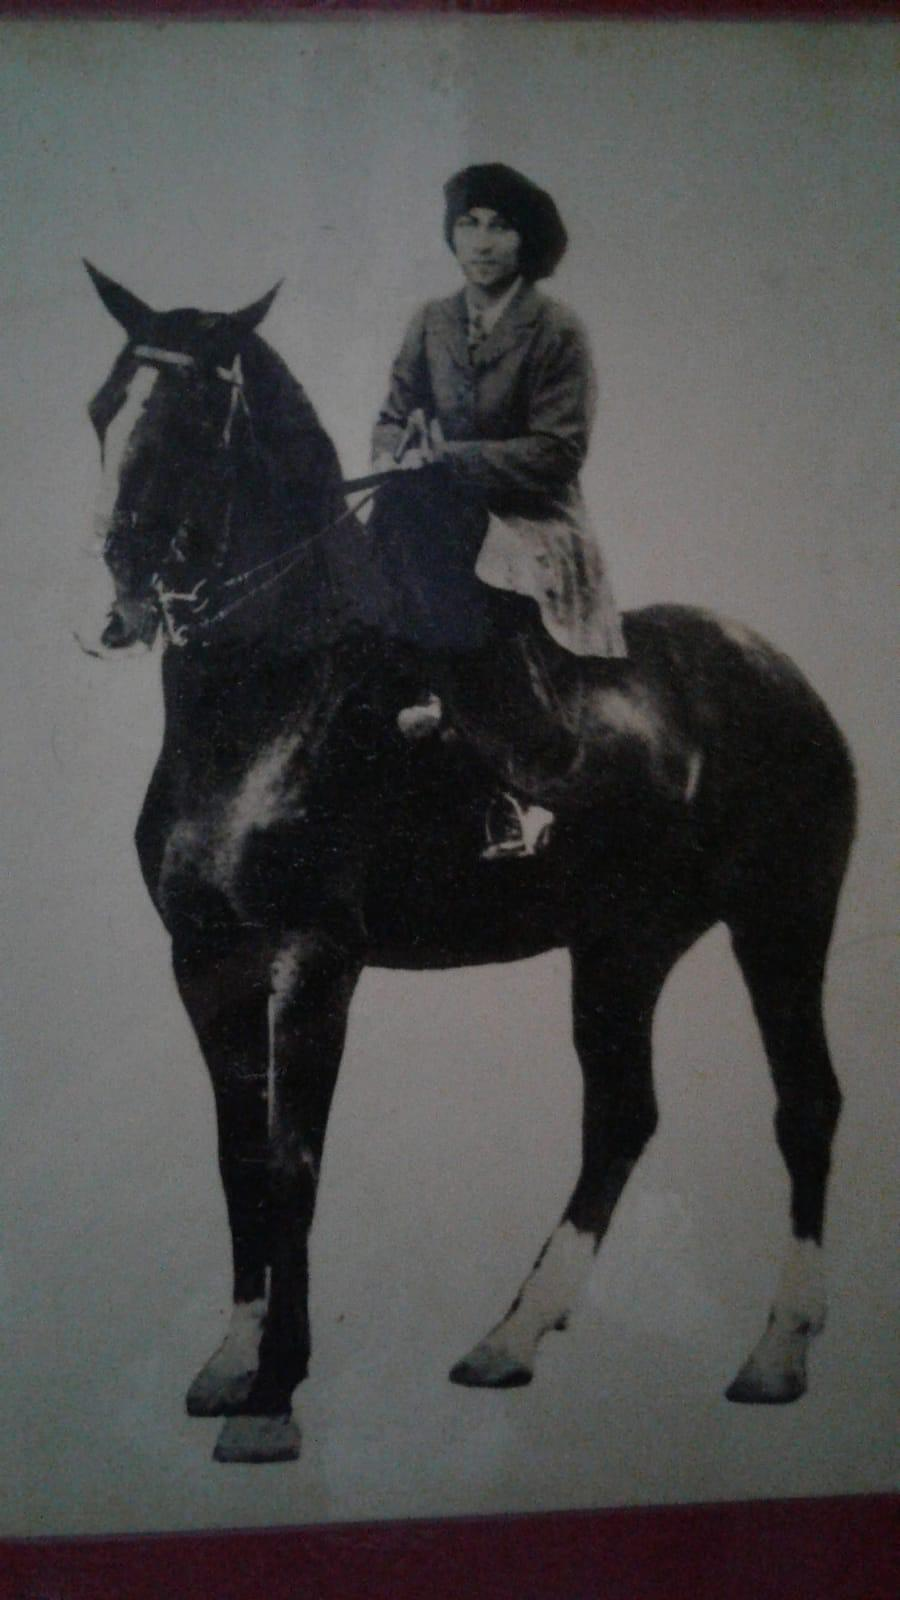 A person riding a horseDescription automatically generated with medium confidence